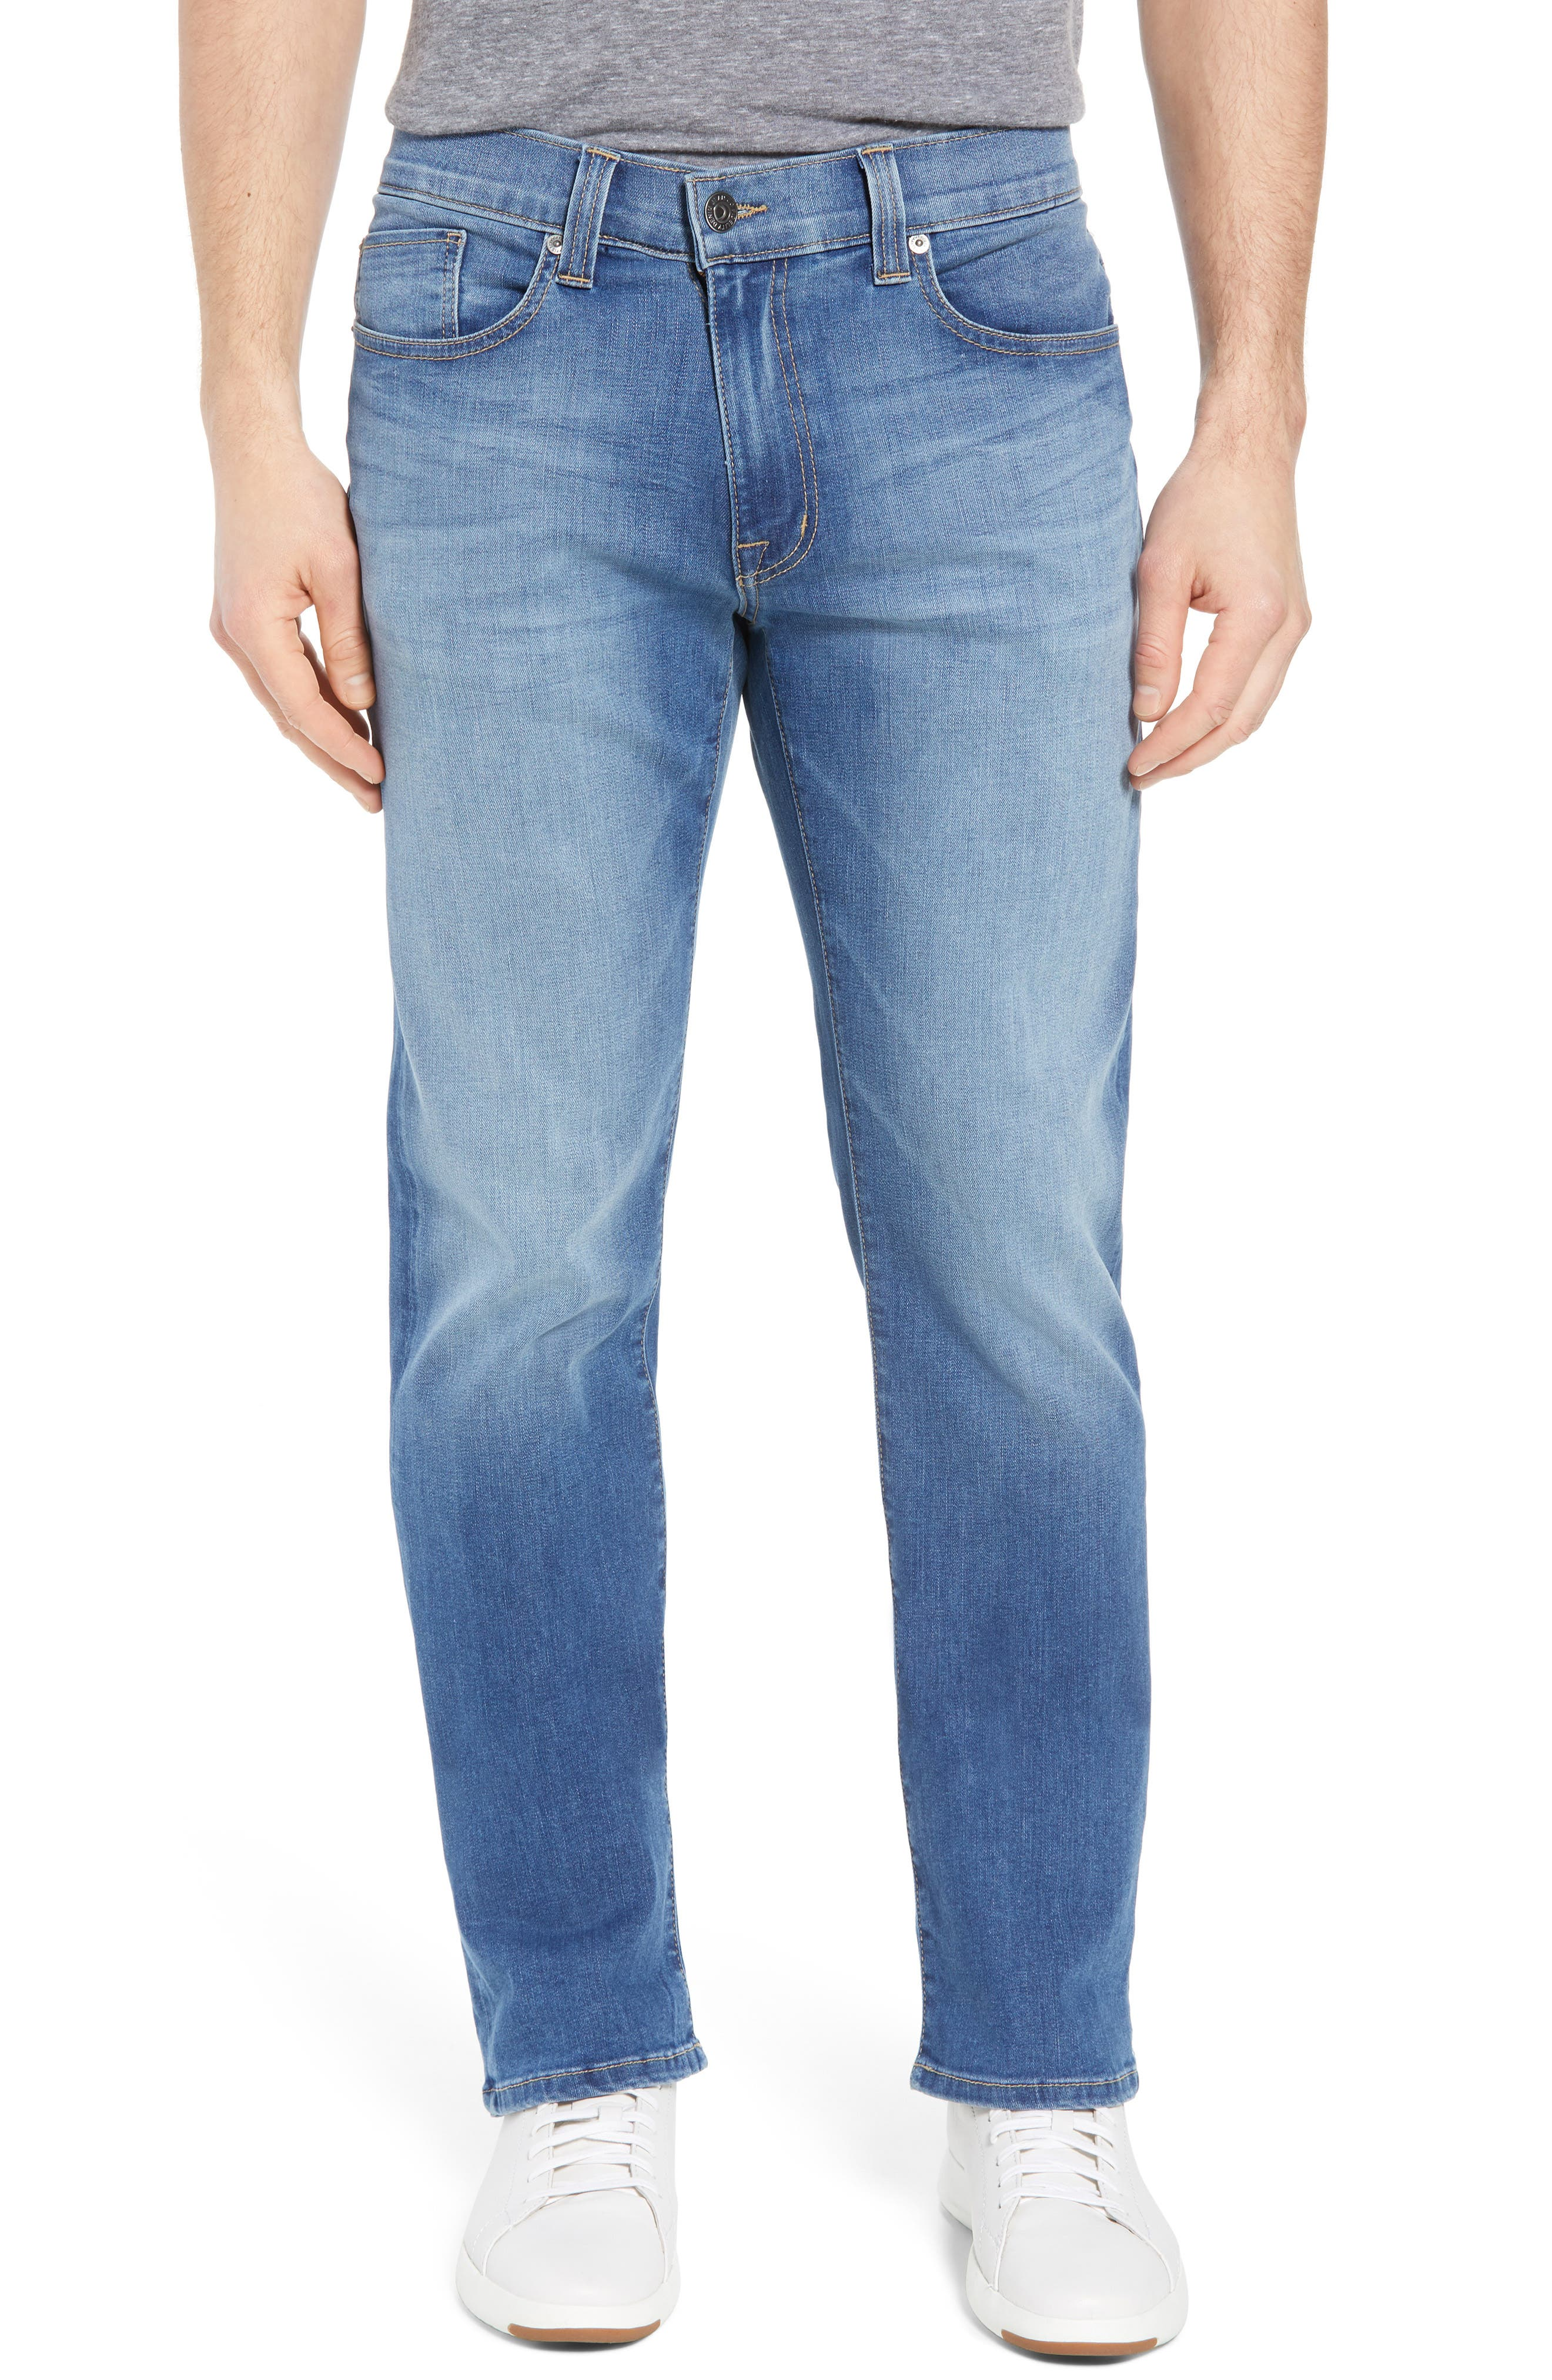 50-11 Relaxed Fit Jeans,                             Main thumbnail 1, color,                             Elysium